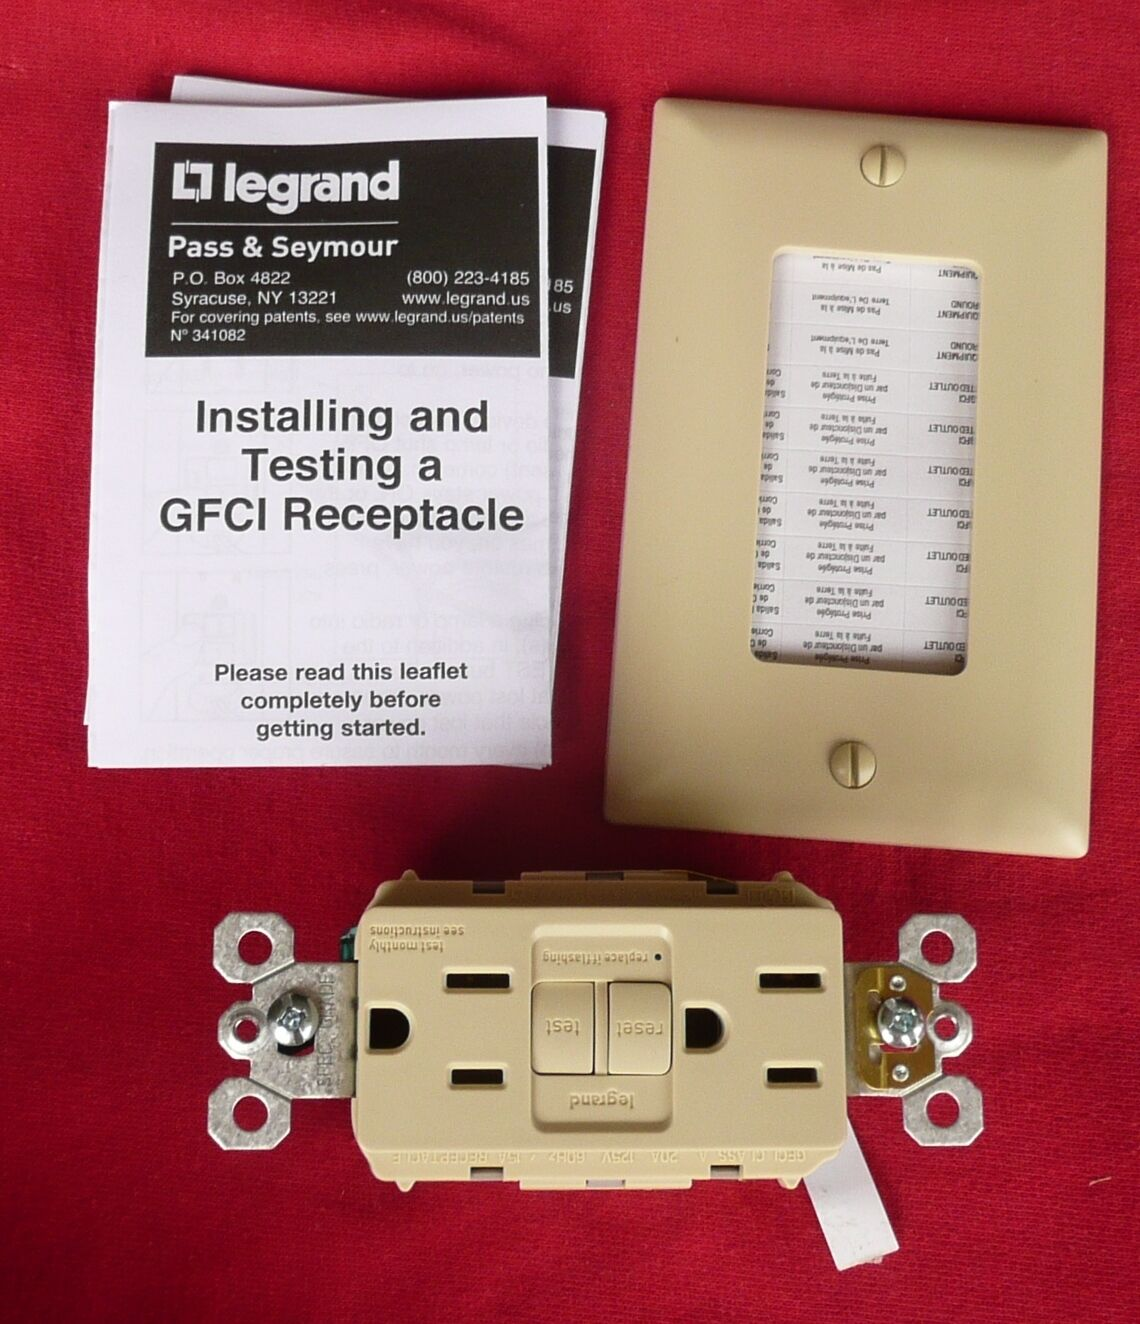 Legrand trademaster gfci self test receptacle 1597i 15 a 125v ivory picture 1 of 3 sciox Image collections